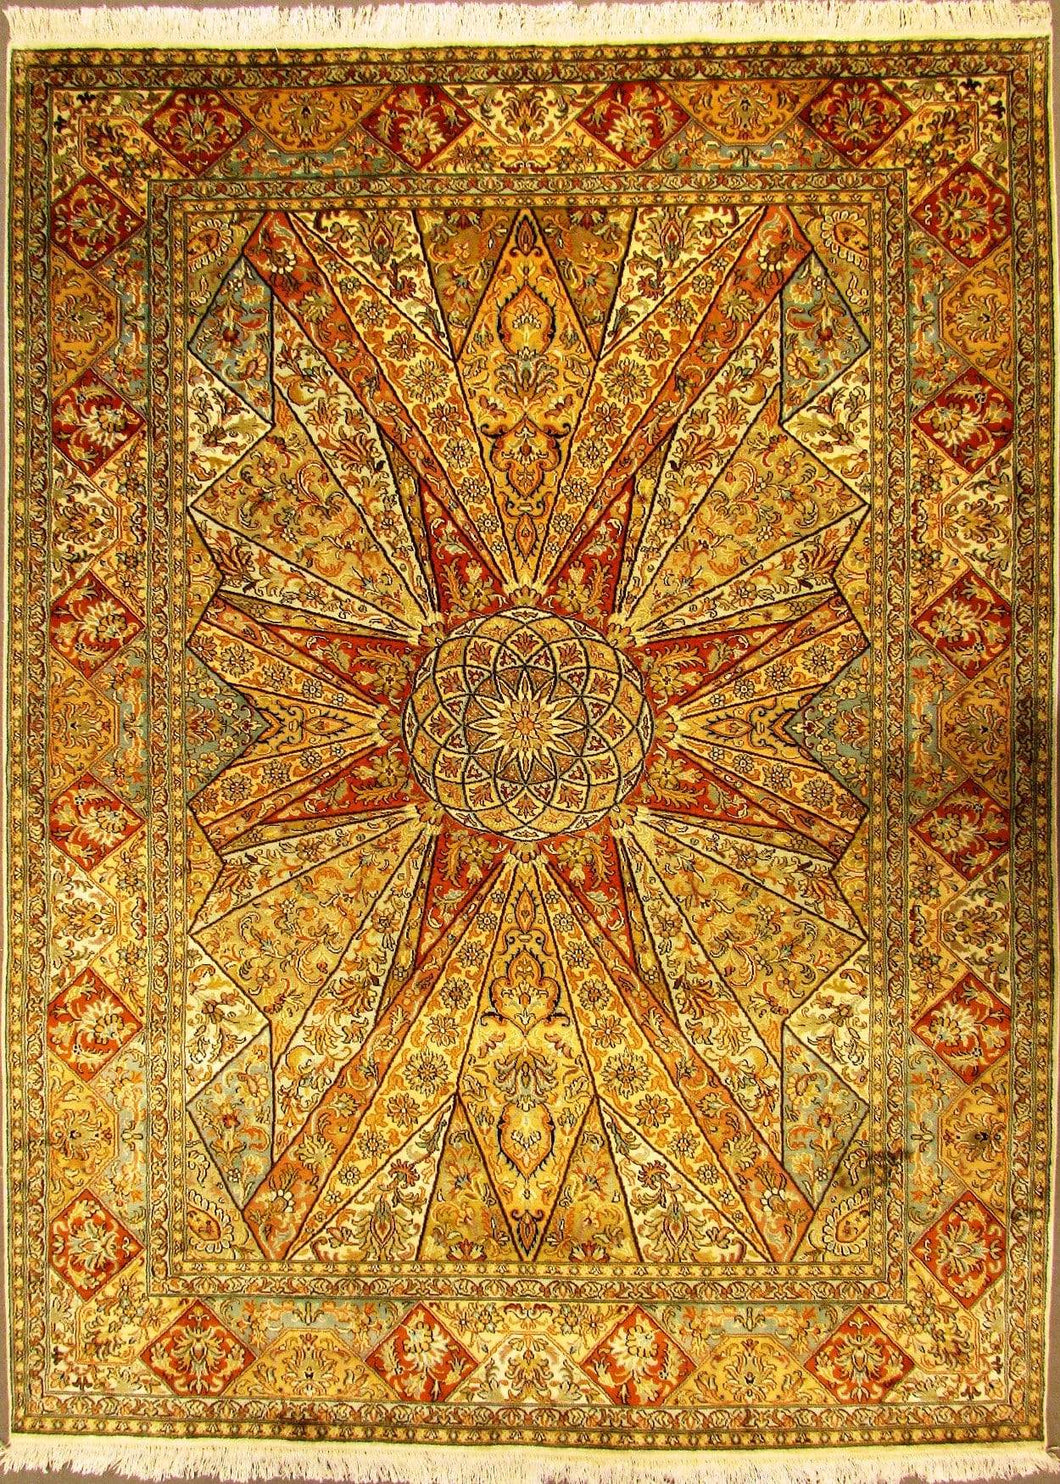 The Rugs Cafe Carpets 5x7 / White Gol Gumbad Design Silk Carpet (Inspired by Taj Mahal's Dome)